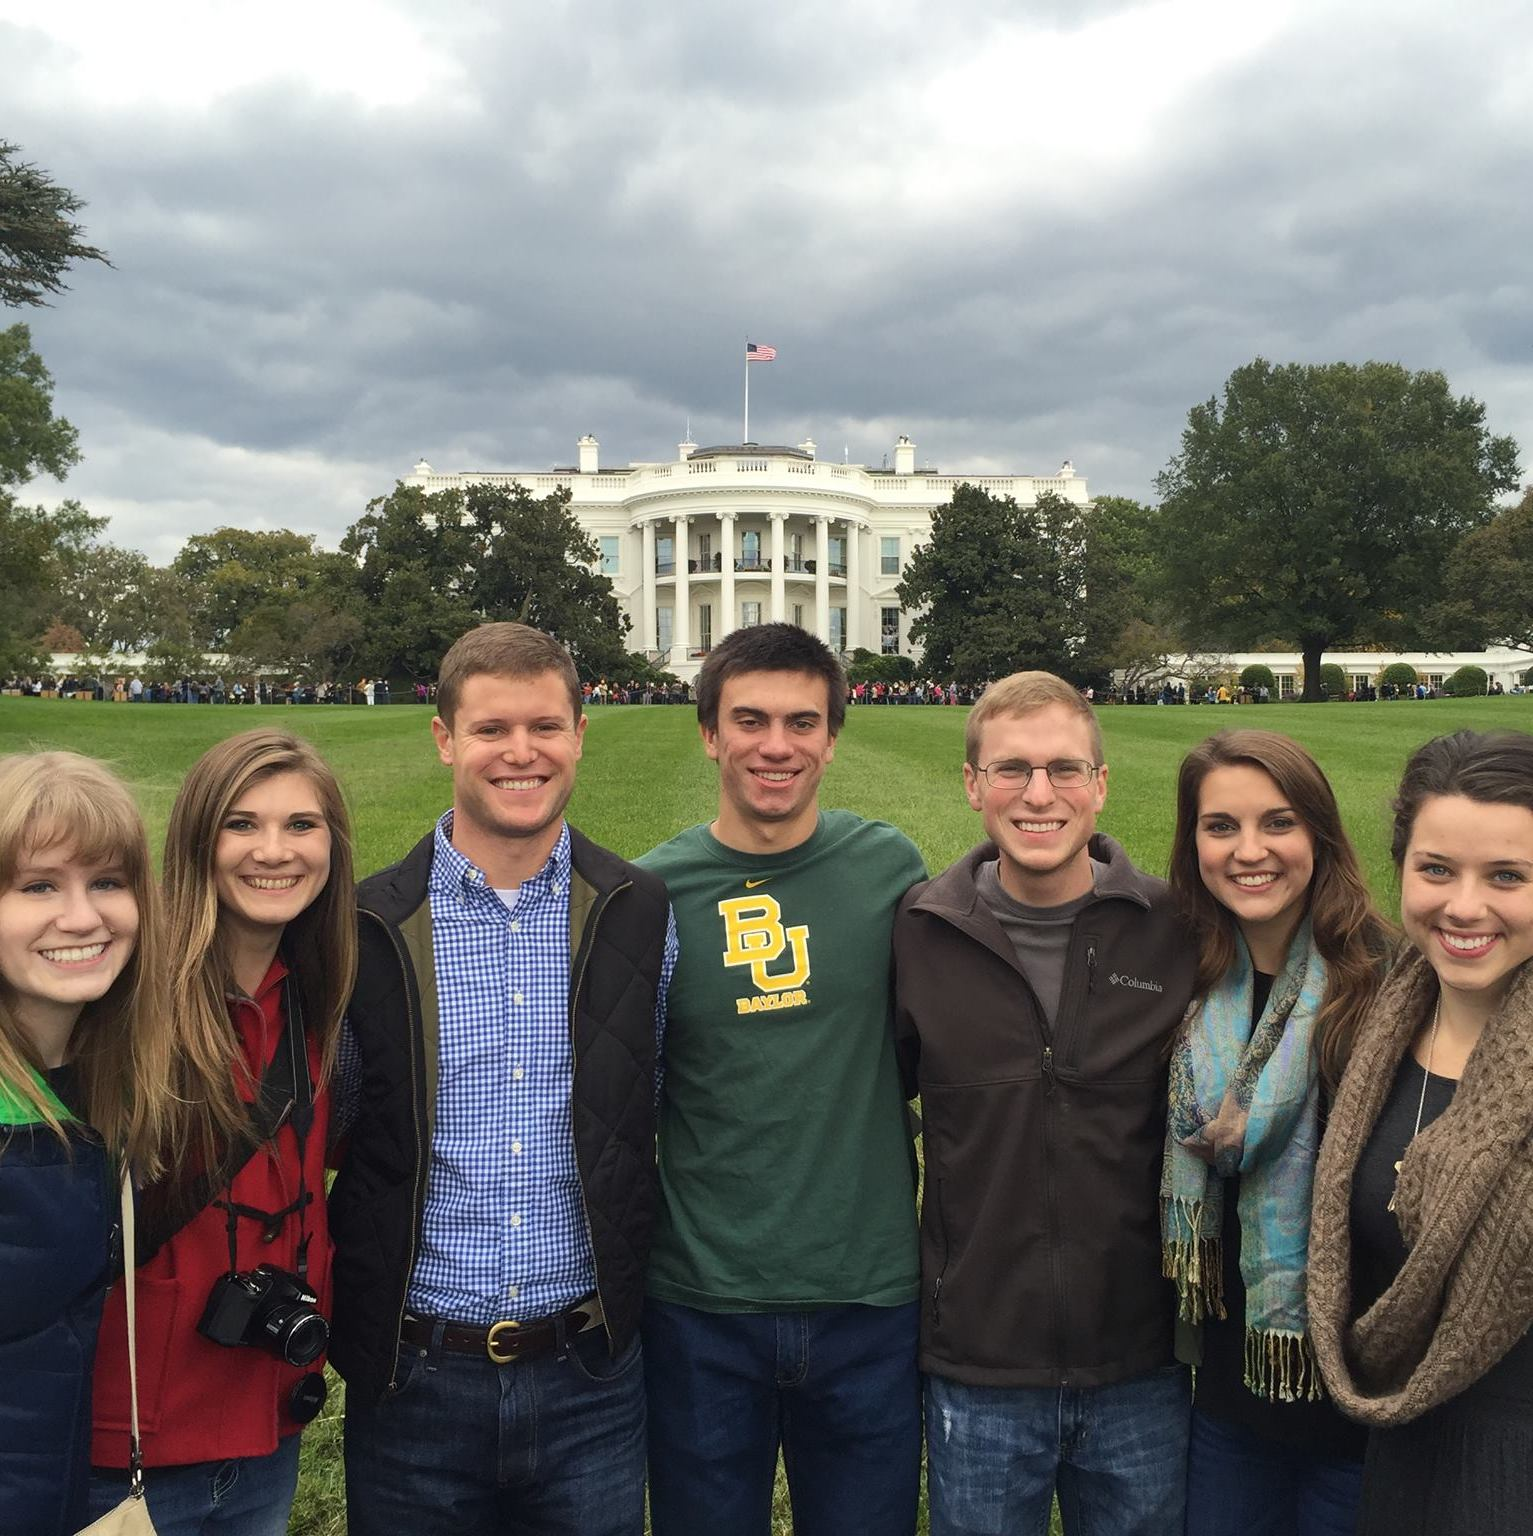 Group Shot at White House.jpg